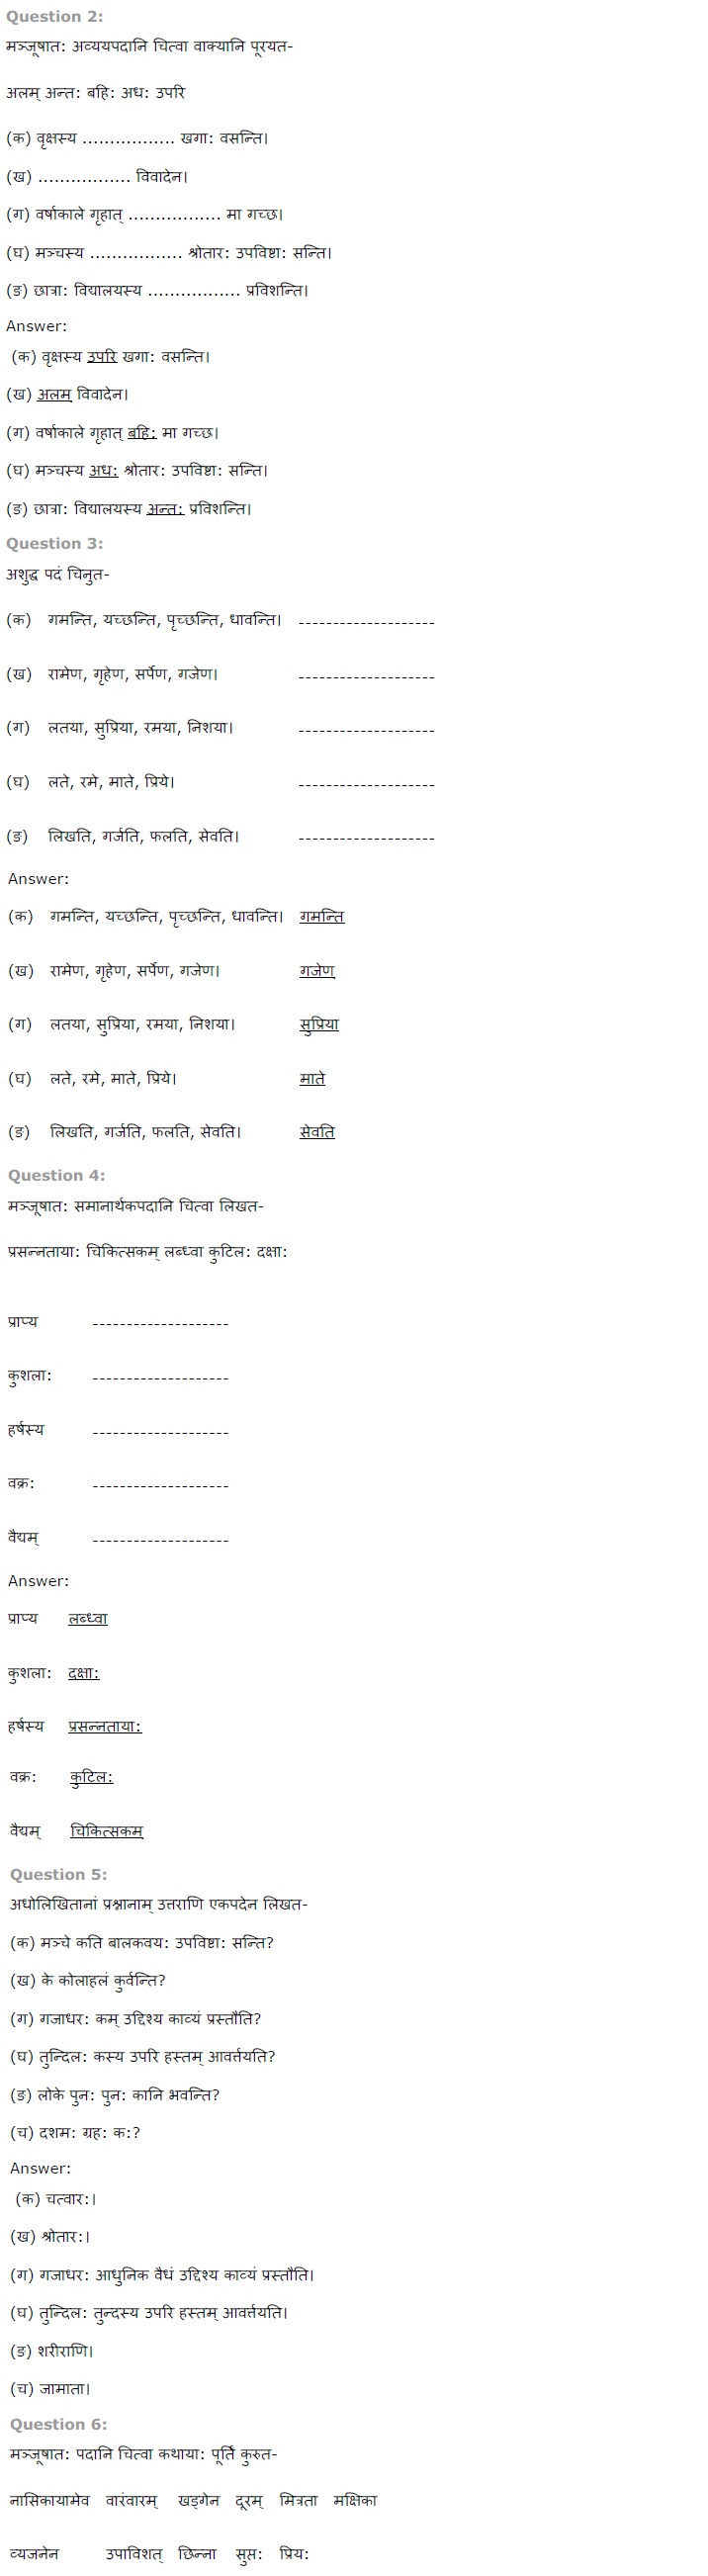 NCERT Solutions for Class 7th Sanskrit Chapter 4 - हास्यबालकविसम्मेलनम